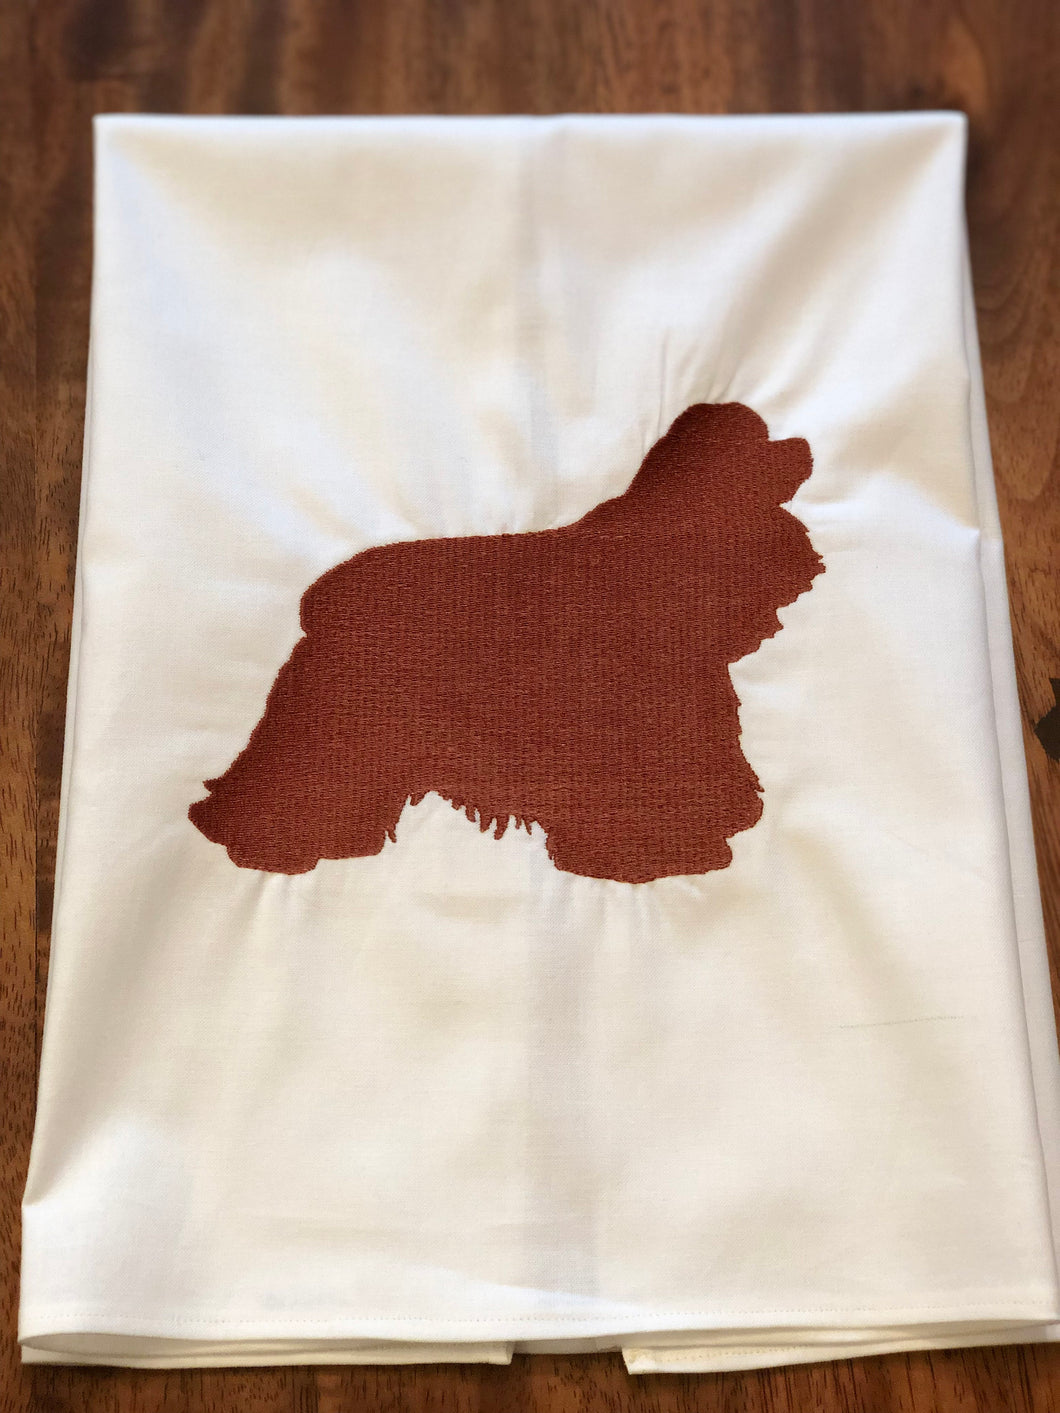 King Charles Cavalier Spaniel Dog Towel